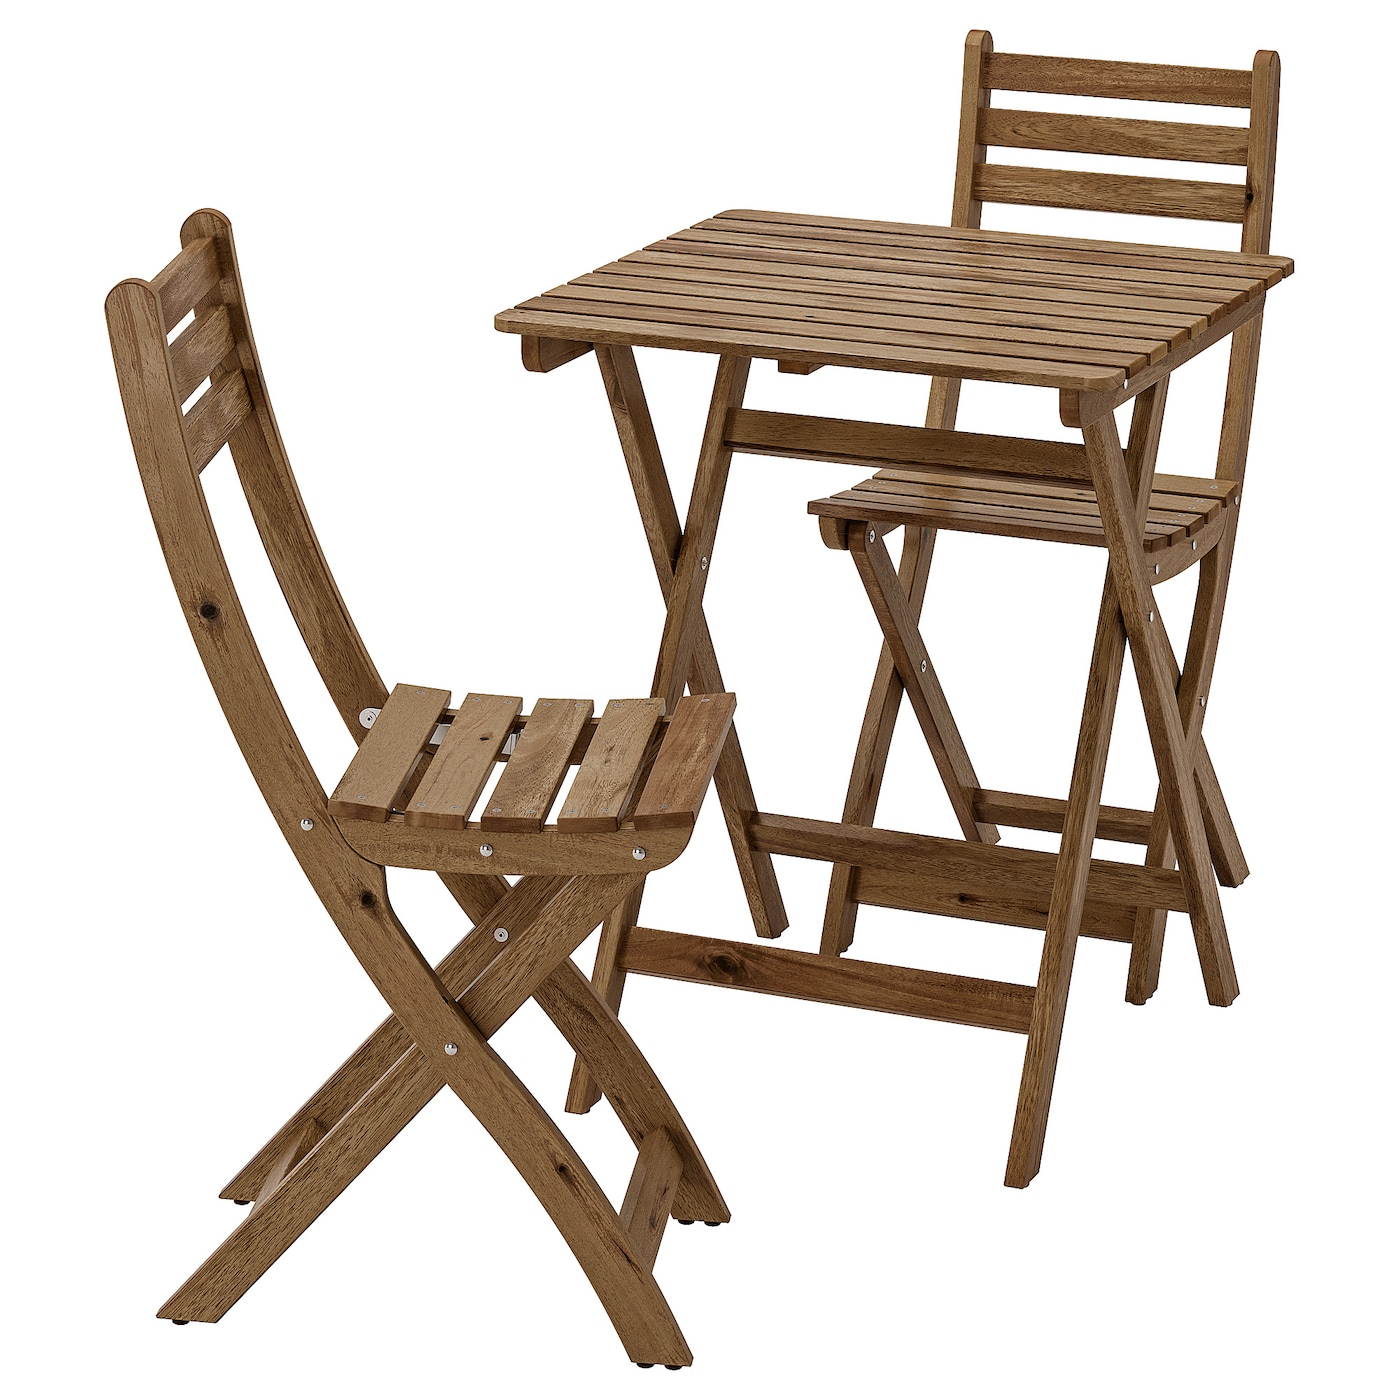 ASKHOLMEN Bistro set, outdoor - gray-brown stained